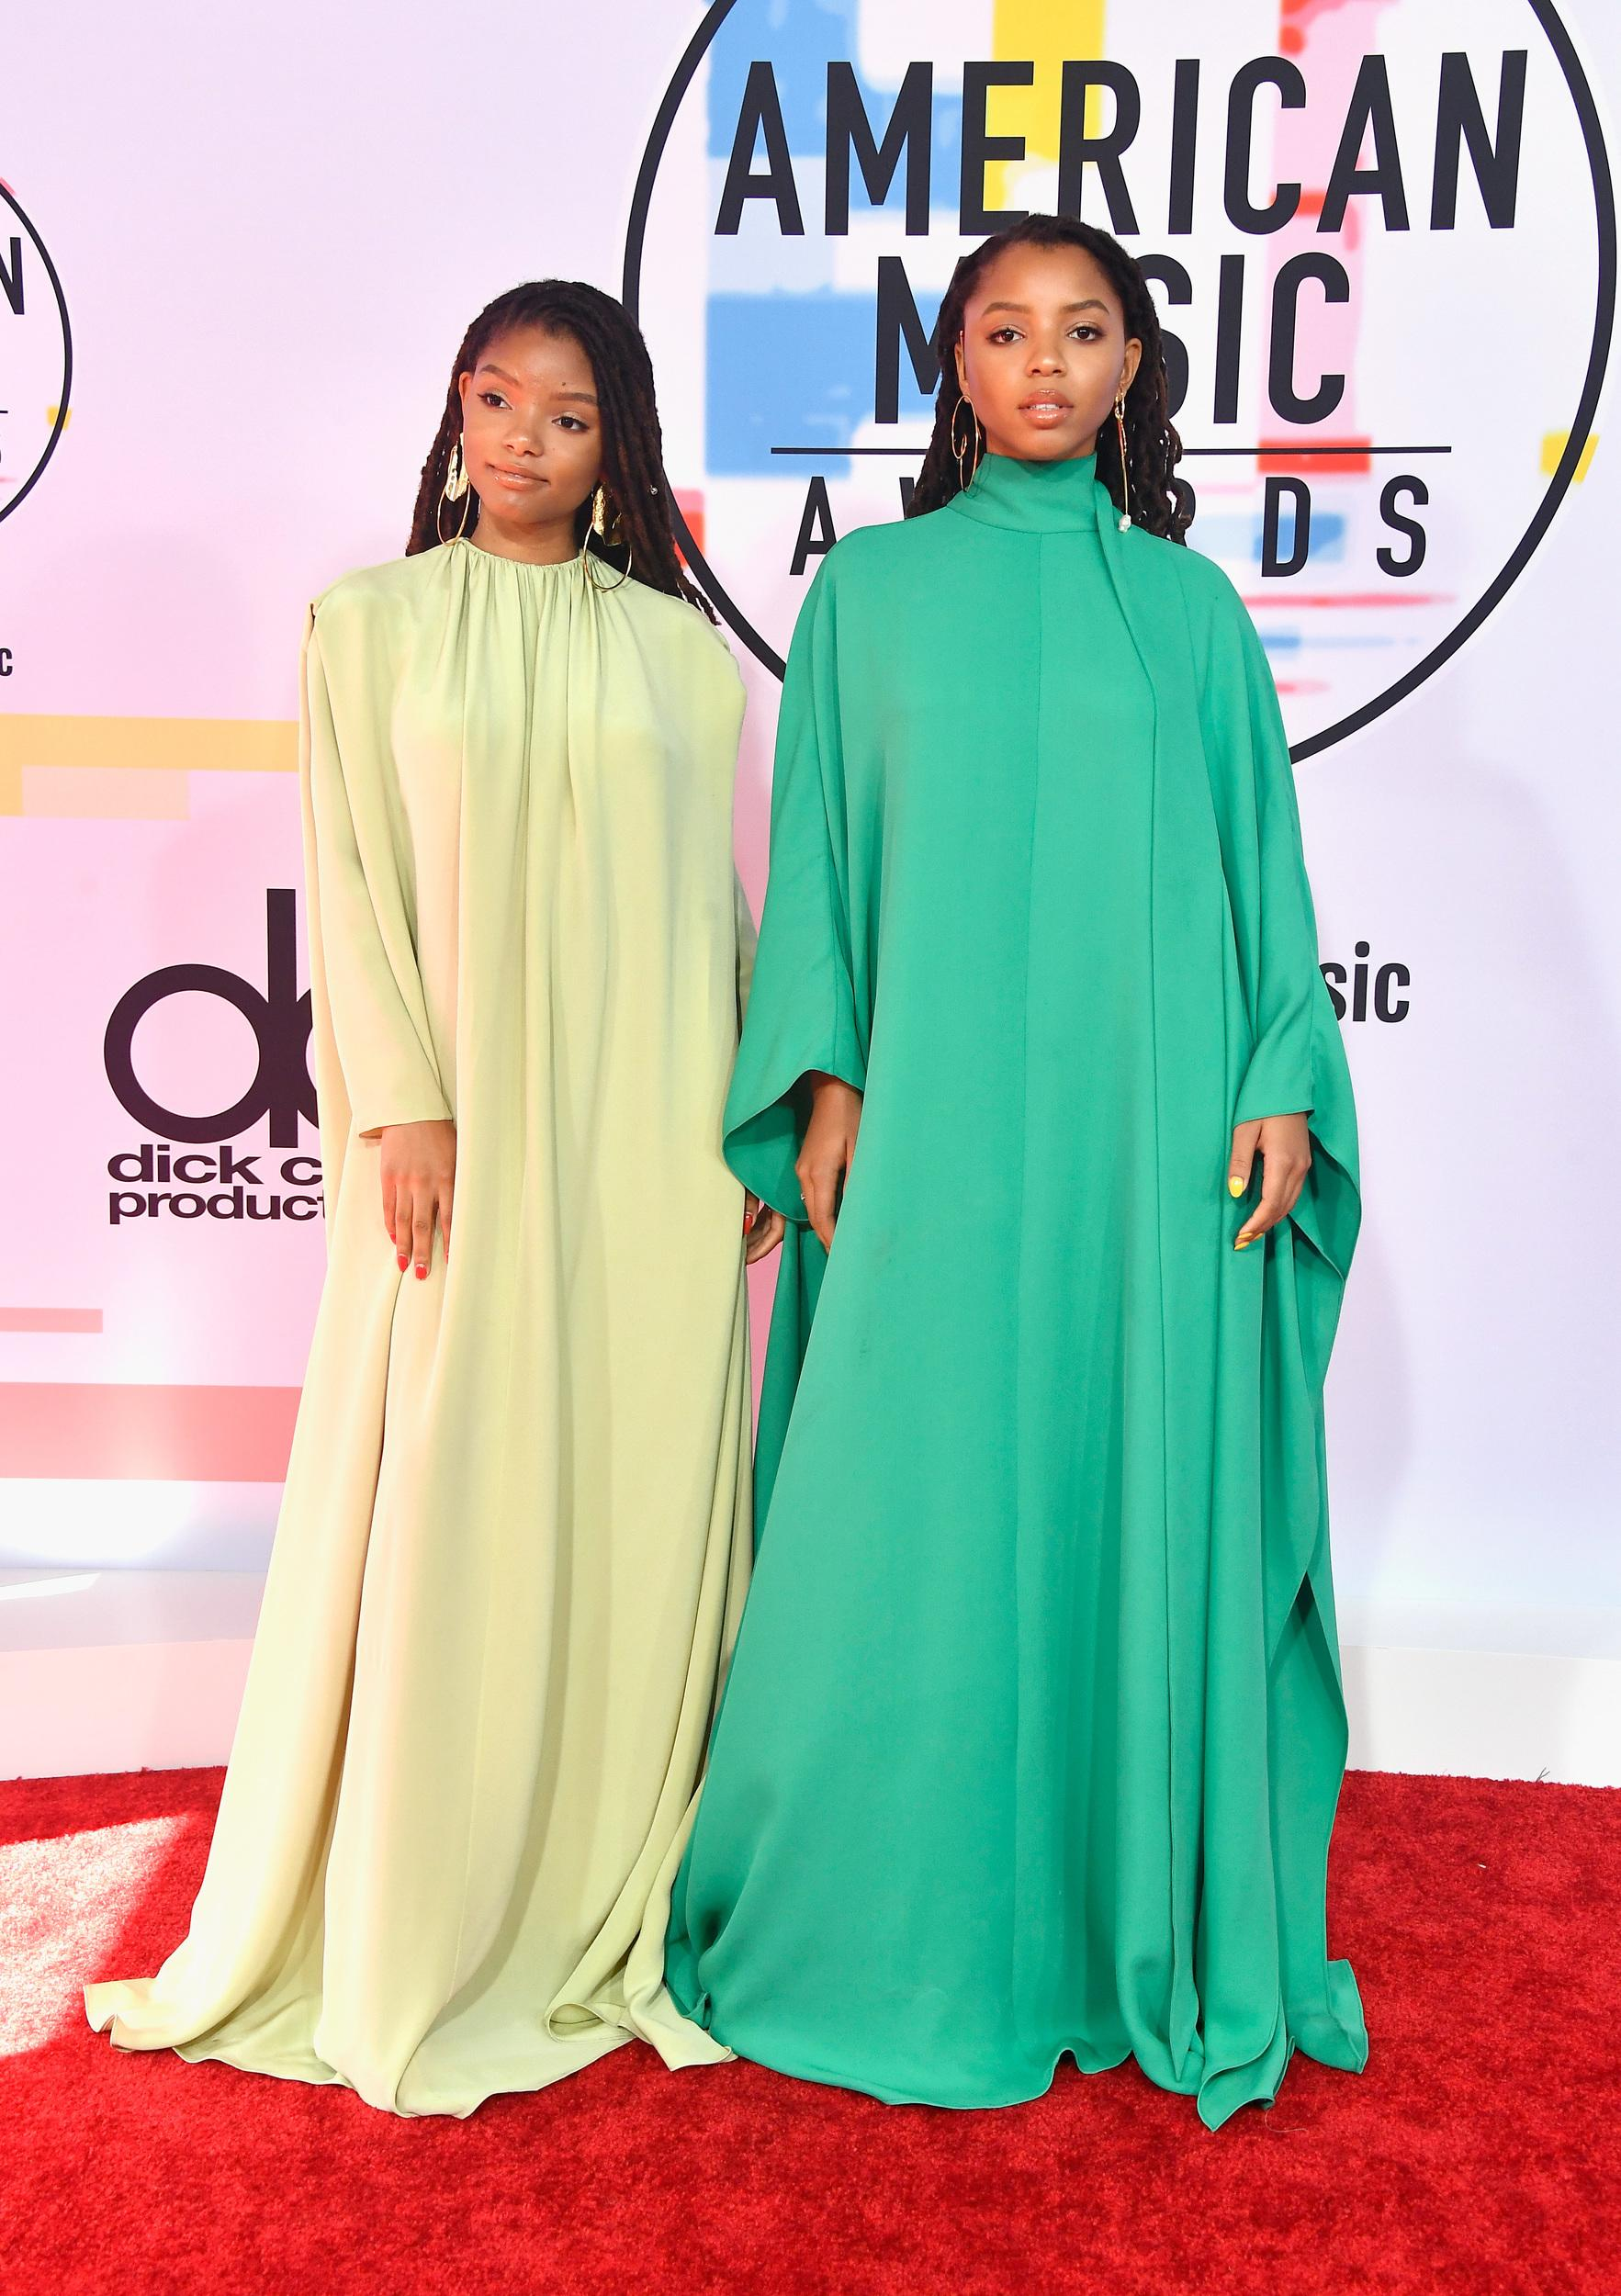 LOS ANGELES, CA - OCTOBER 09:  Halle Bailey (L) and Chloe Bailey of Chloe x Halle attend the 2018 American Music Awards at Microsoft Theater on October 9, 2018 in Los Angeles, California.  (Photo by Frazer Harrison/Getty Images)